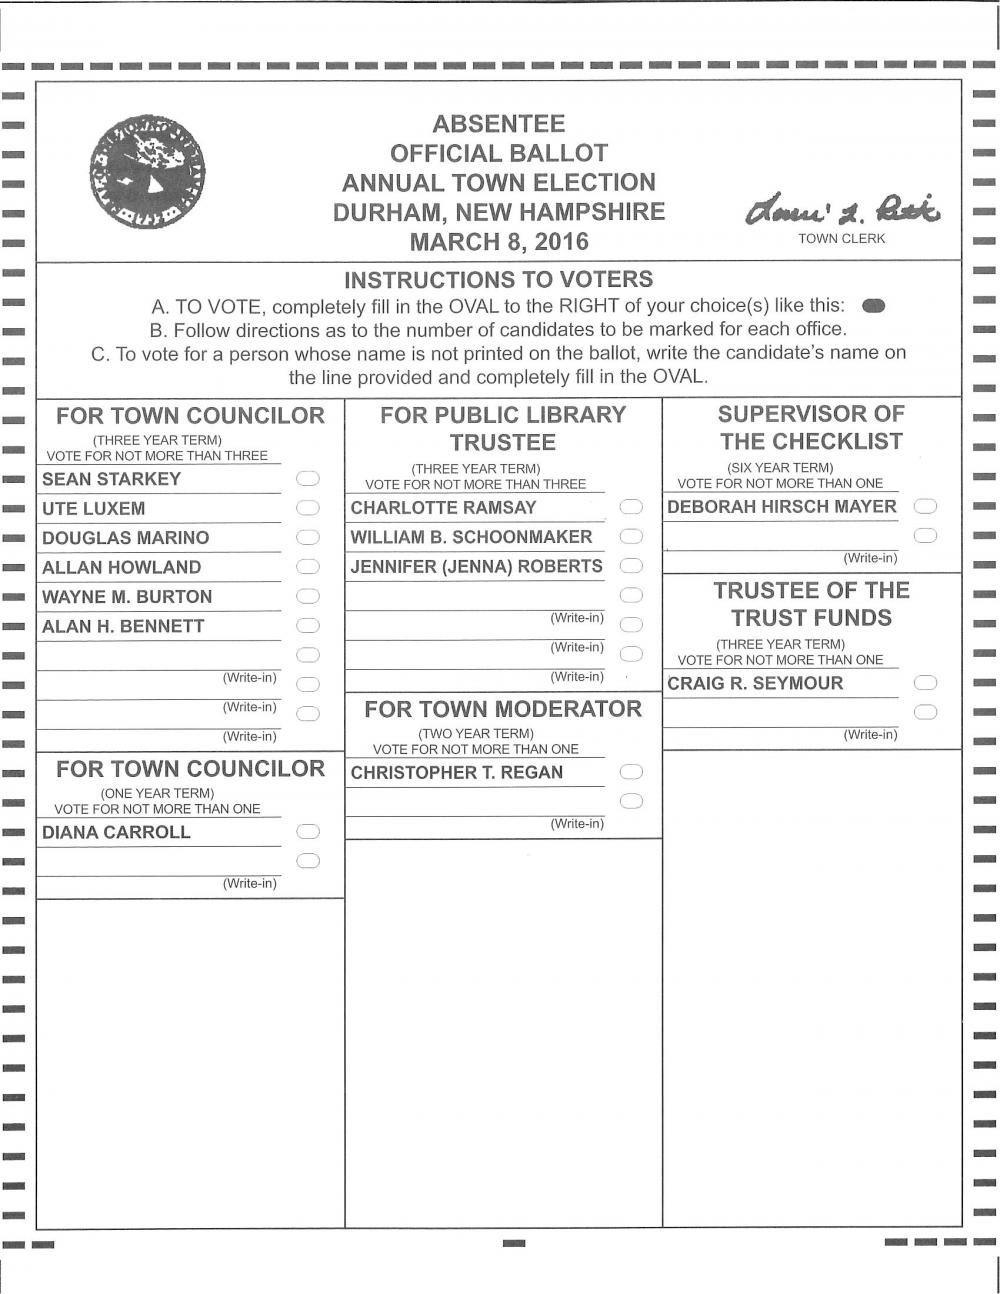 Absentee Official Ballot Annual Town Election, March 8, 2016 | The ...